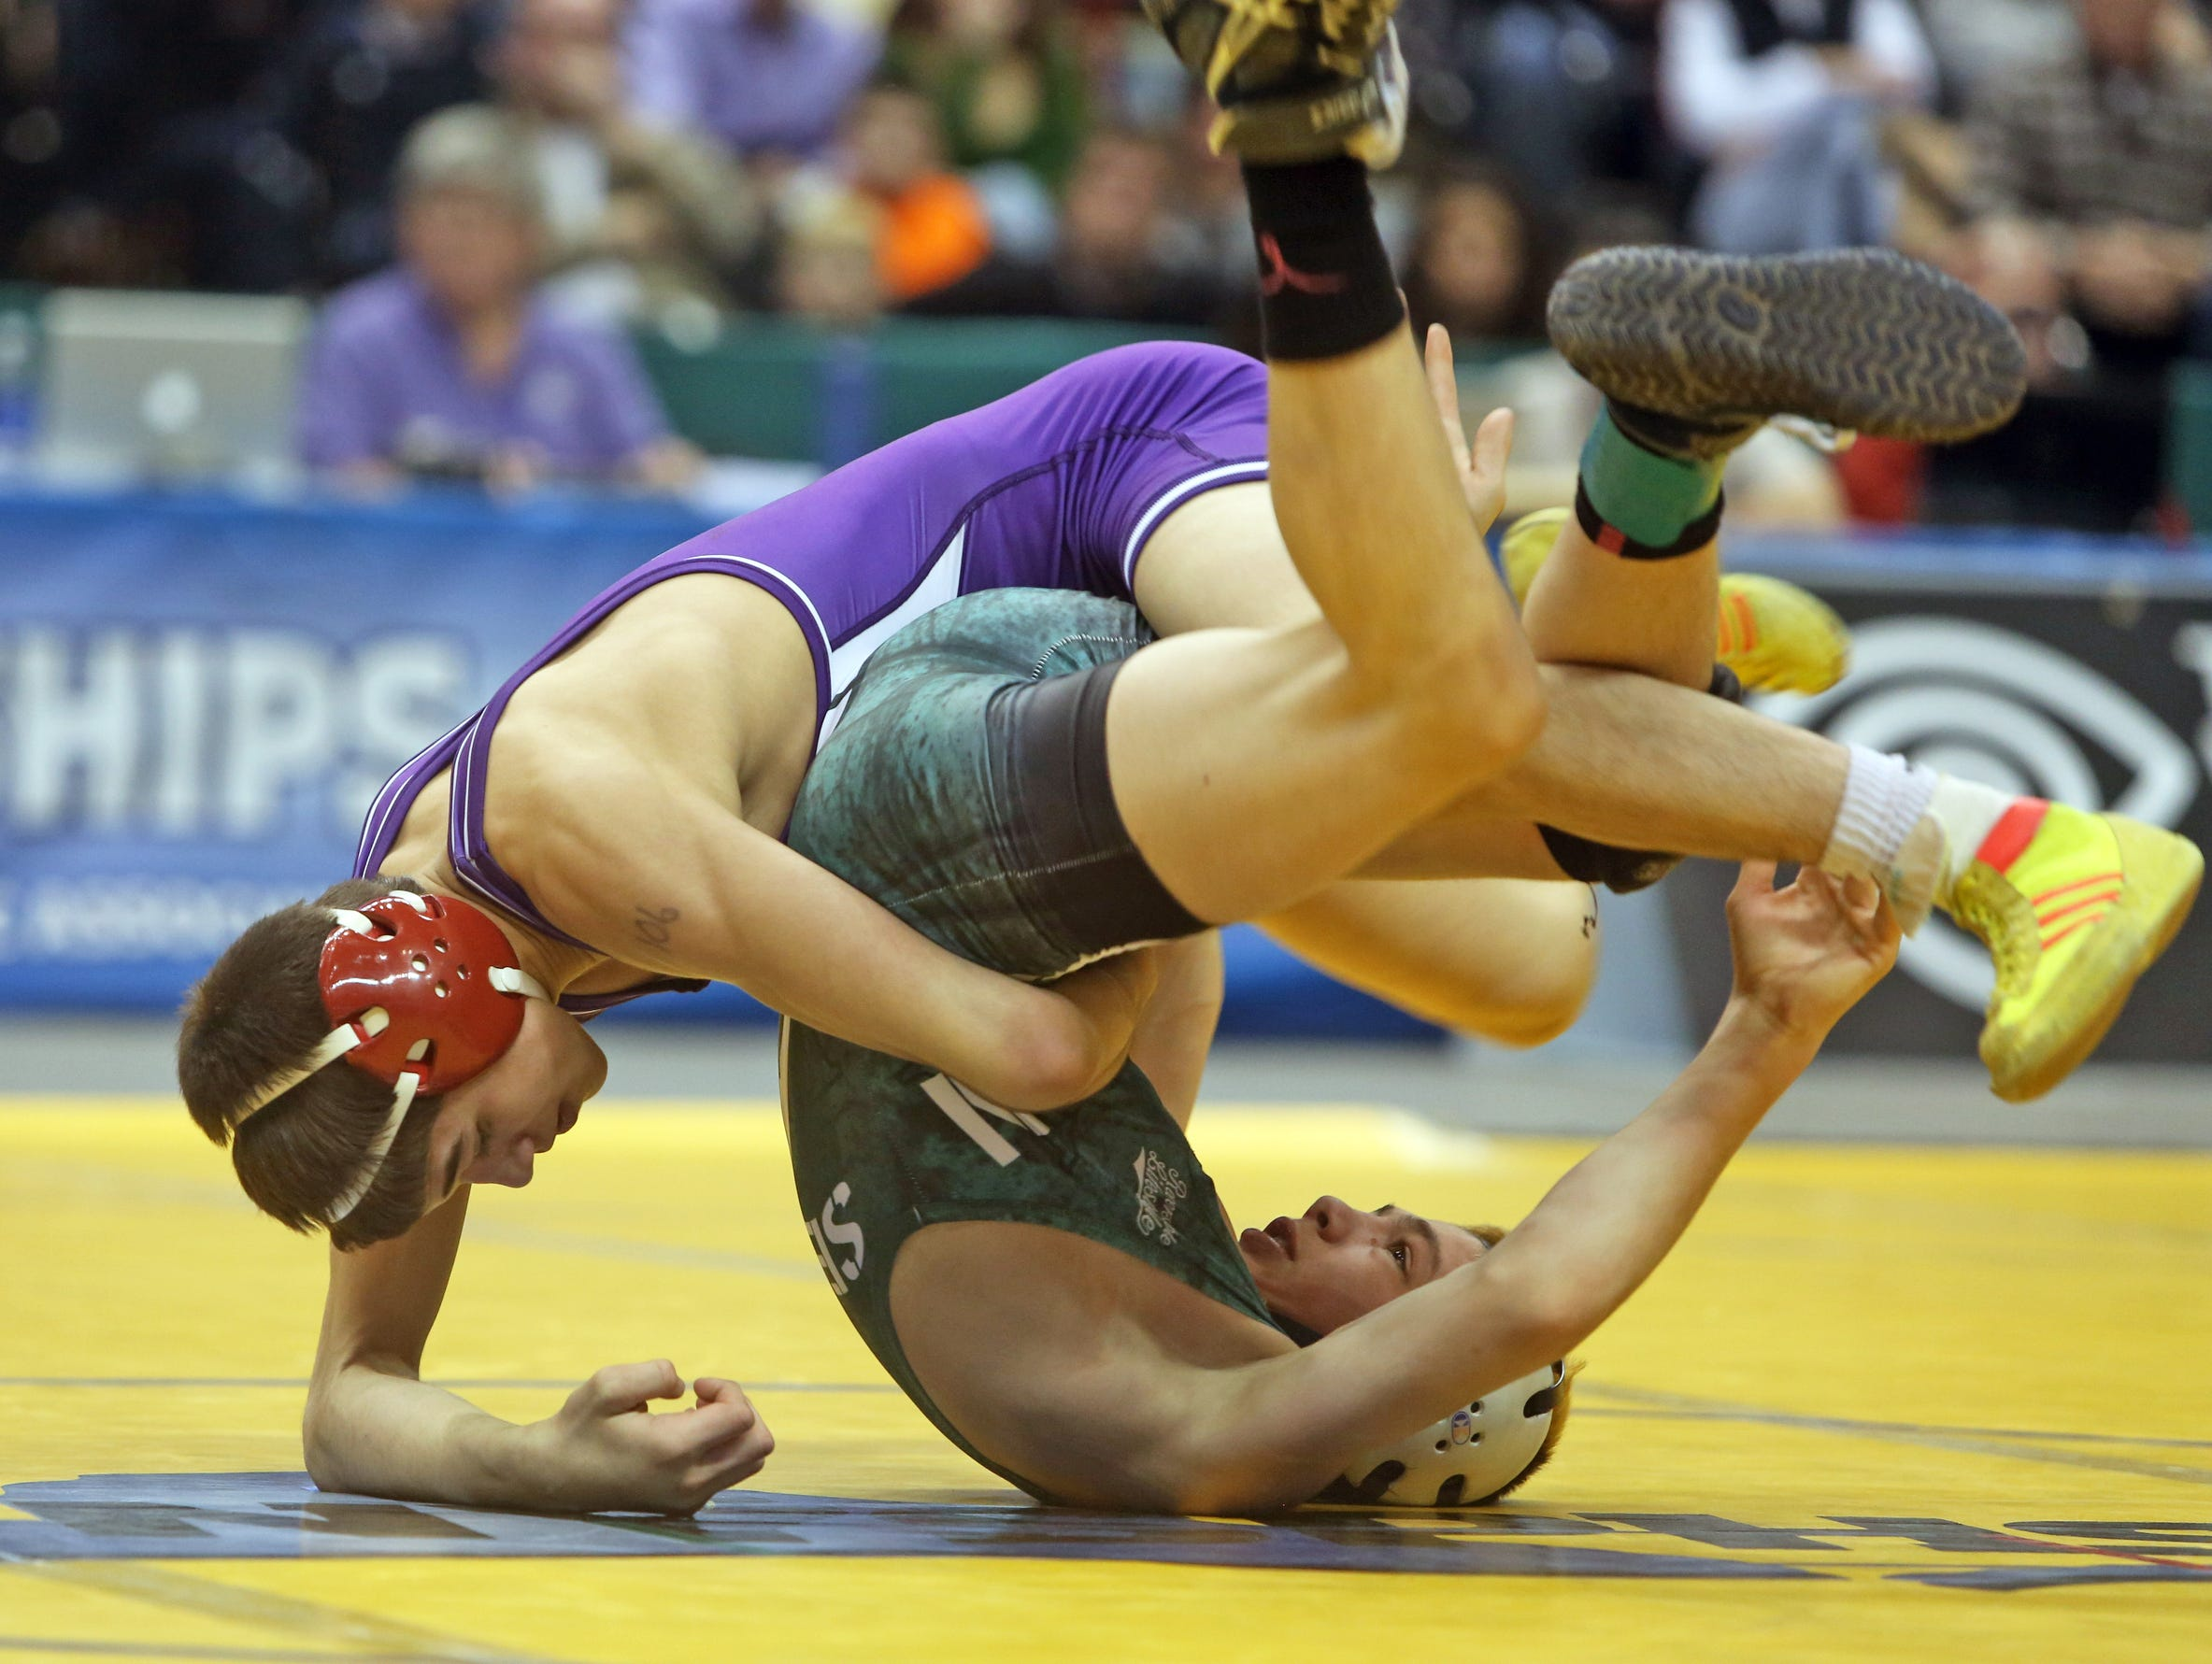 Yianni Diakomihalis of Hilton, left, defeated Vinny Vespa of Monroe Woodbury to win the Div. I 106 pound championship at the New York State Wrestling Championships at the Times Union Center in Albany March 1, 2014.